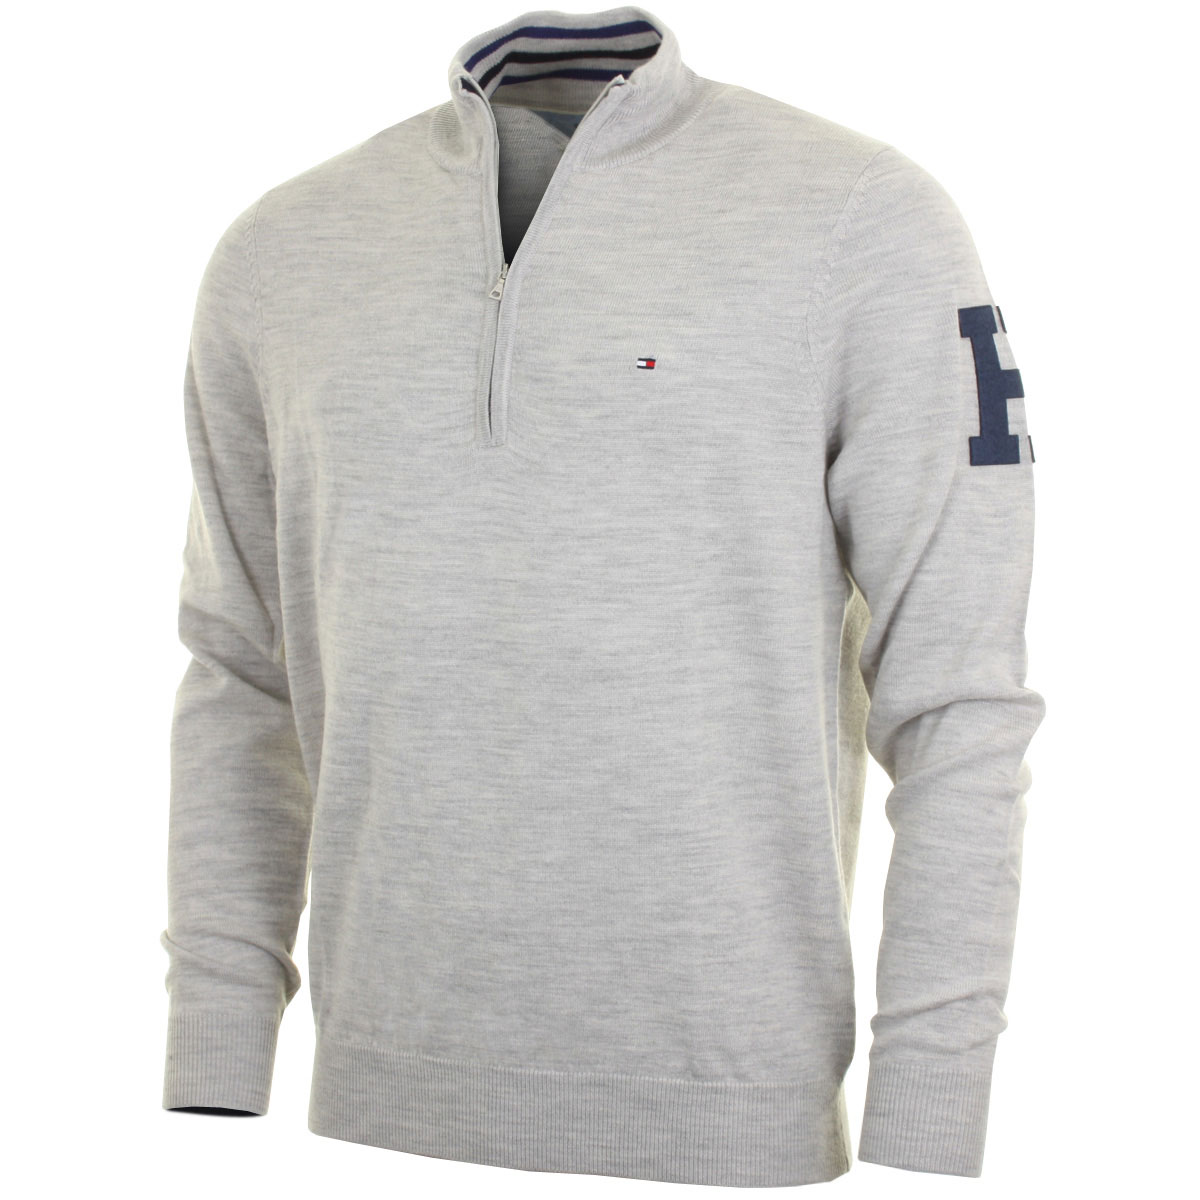 tommy hilfiger golf sweater sweater grey. Black Bedroom Furniture Sets. Home Design Ideas